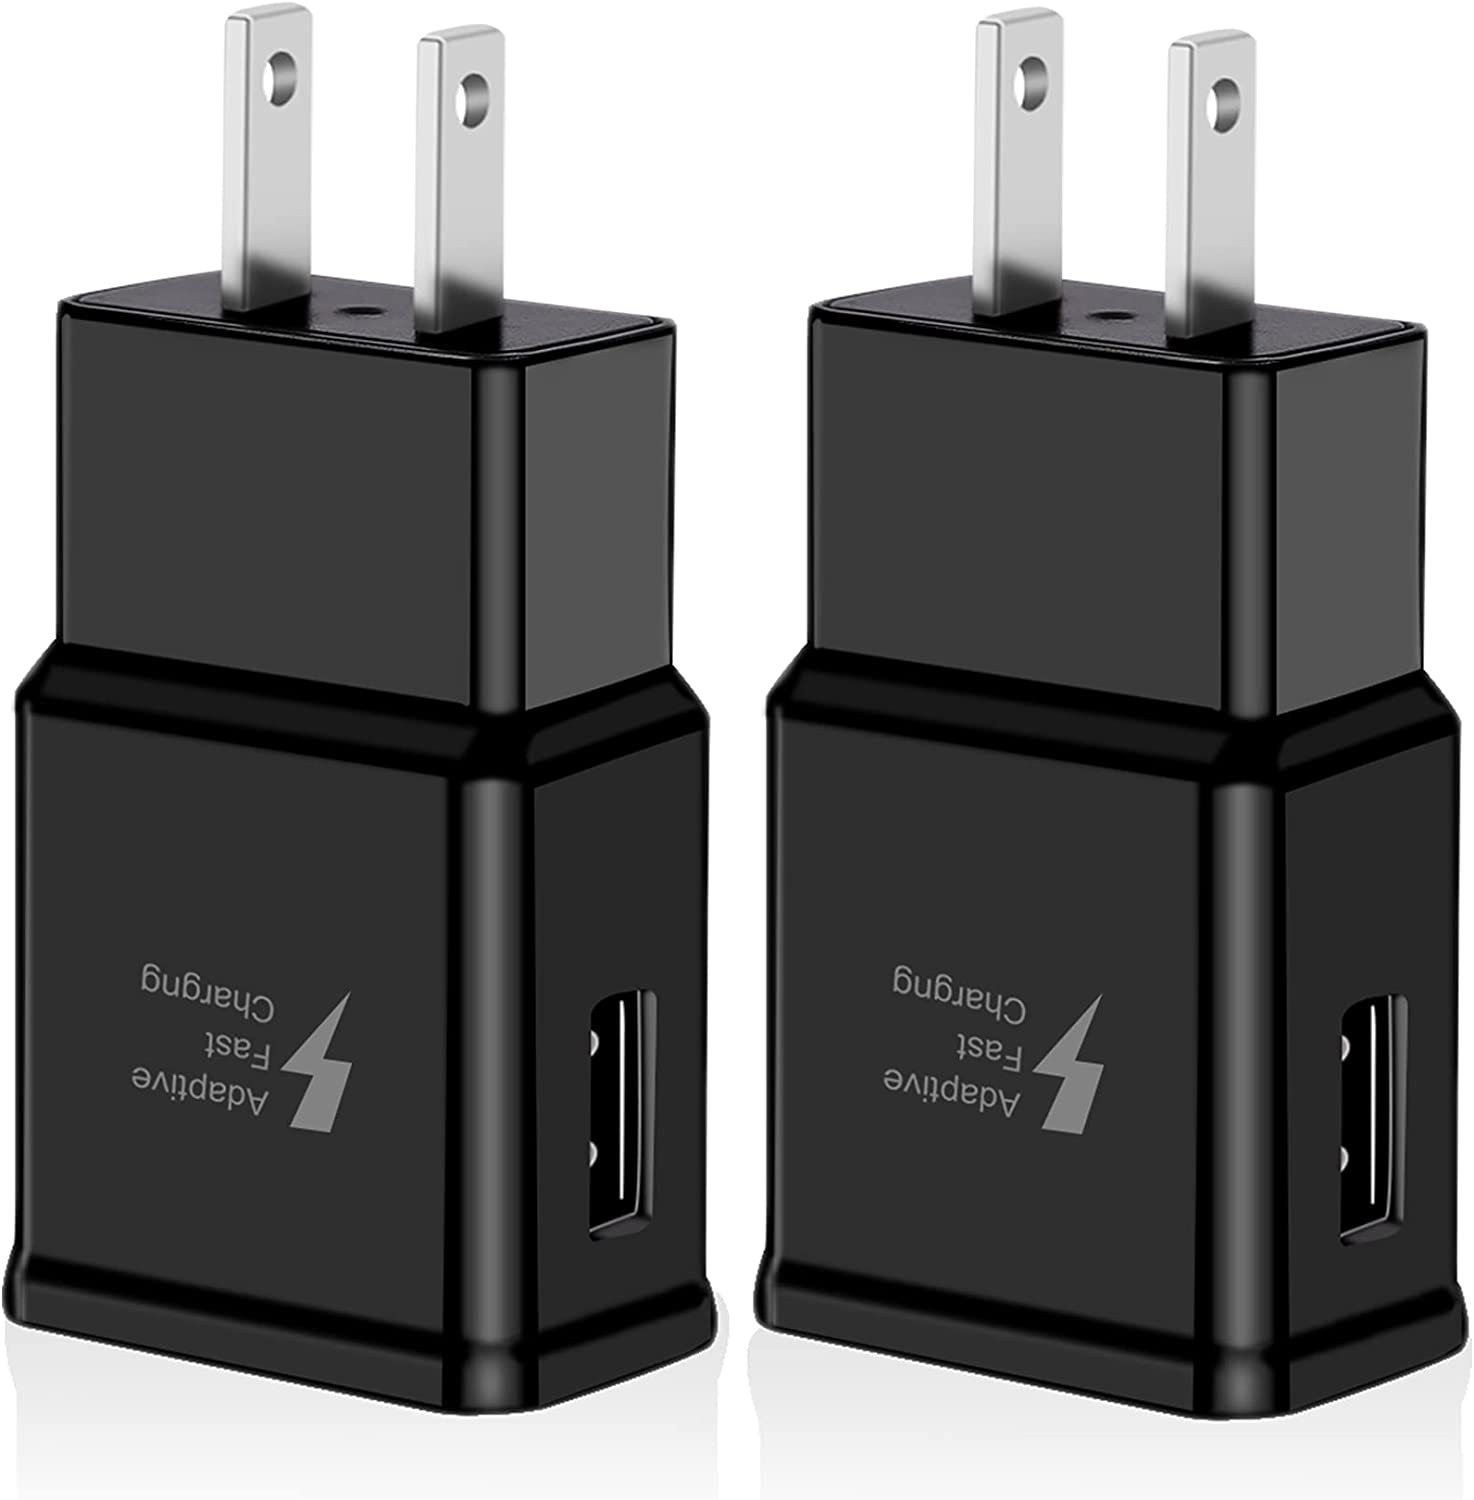 2 Pack Adaptive Fast Charging Block USB Wall Charger Plug Adapter Compatible with Samsung Galaxy S21/S21+/S21Ultra/S20/S20+/Note 20/10/S10 S9 S8 S7 S6 Edge Plus Active, Note 5 8 9 Quick Charge (Black)